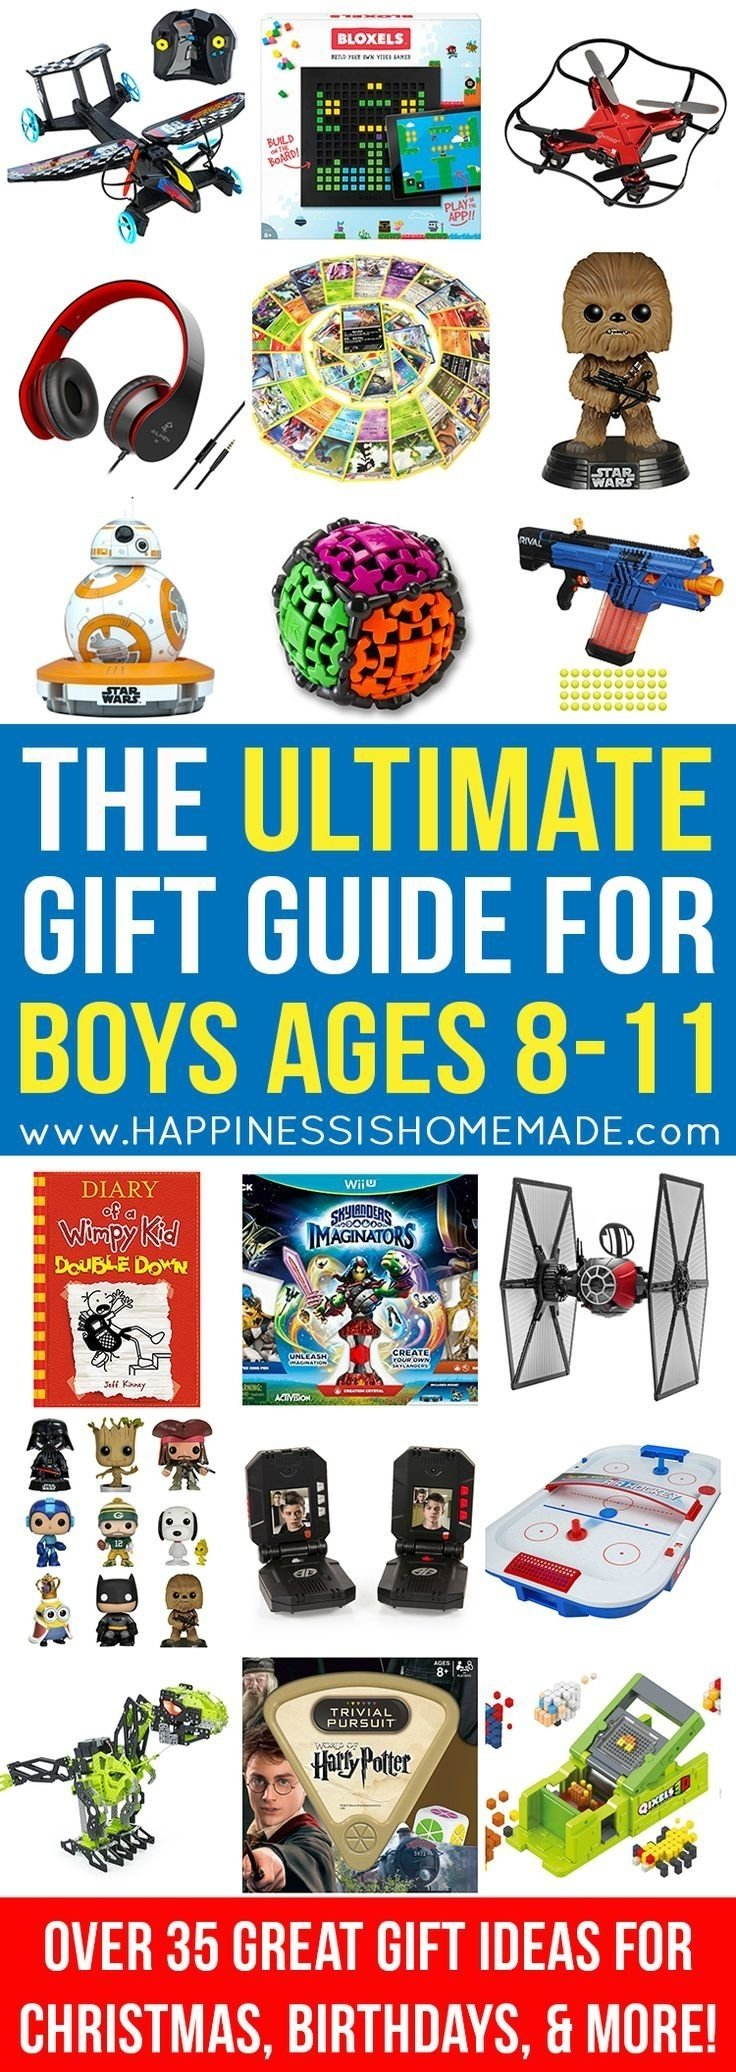 10 Pretty Christmas List Ideas For Guys 84 best cool toys for 11 year old boys images on pinterest best 2020